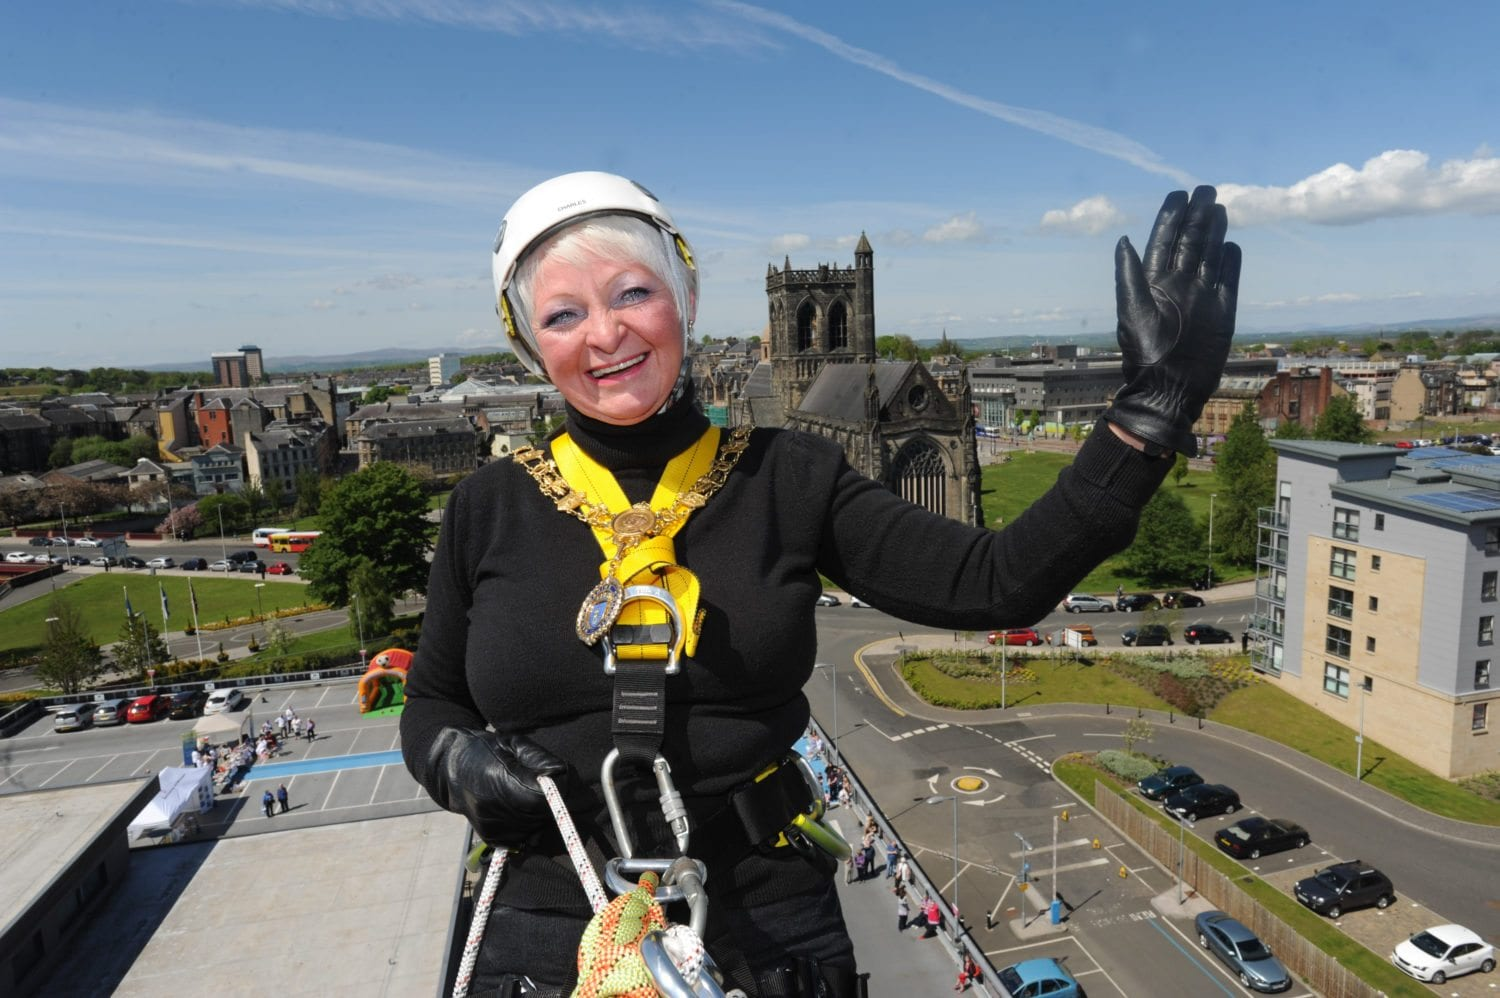 Provost Hall starting her abseil